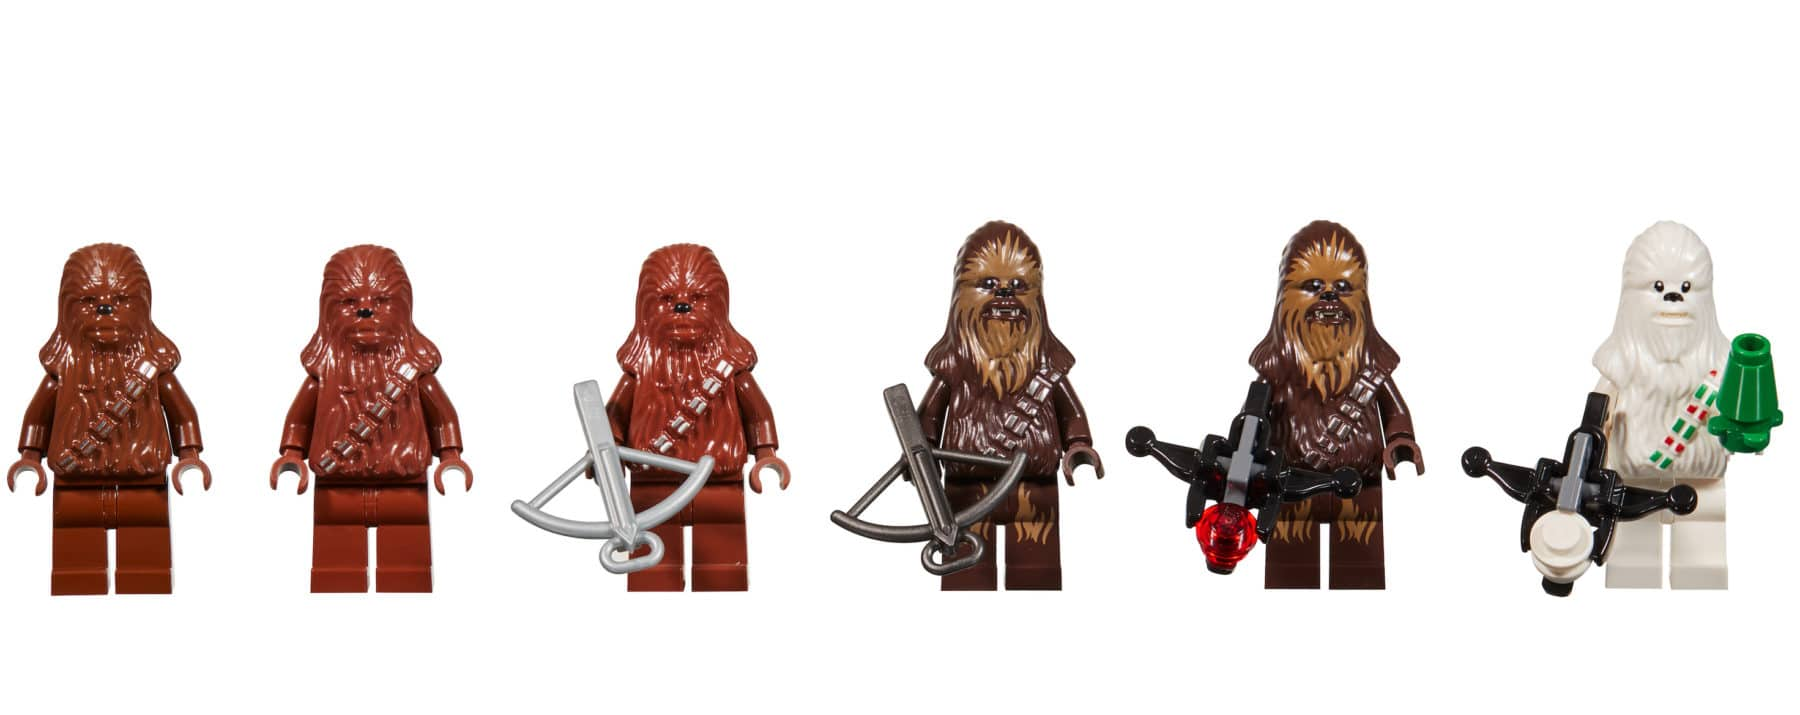 LEGO Star Wars Chewbacca Minifigur Evolution